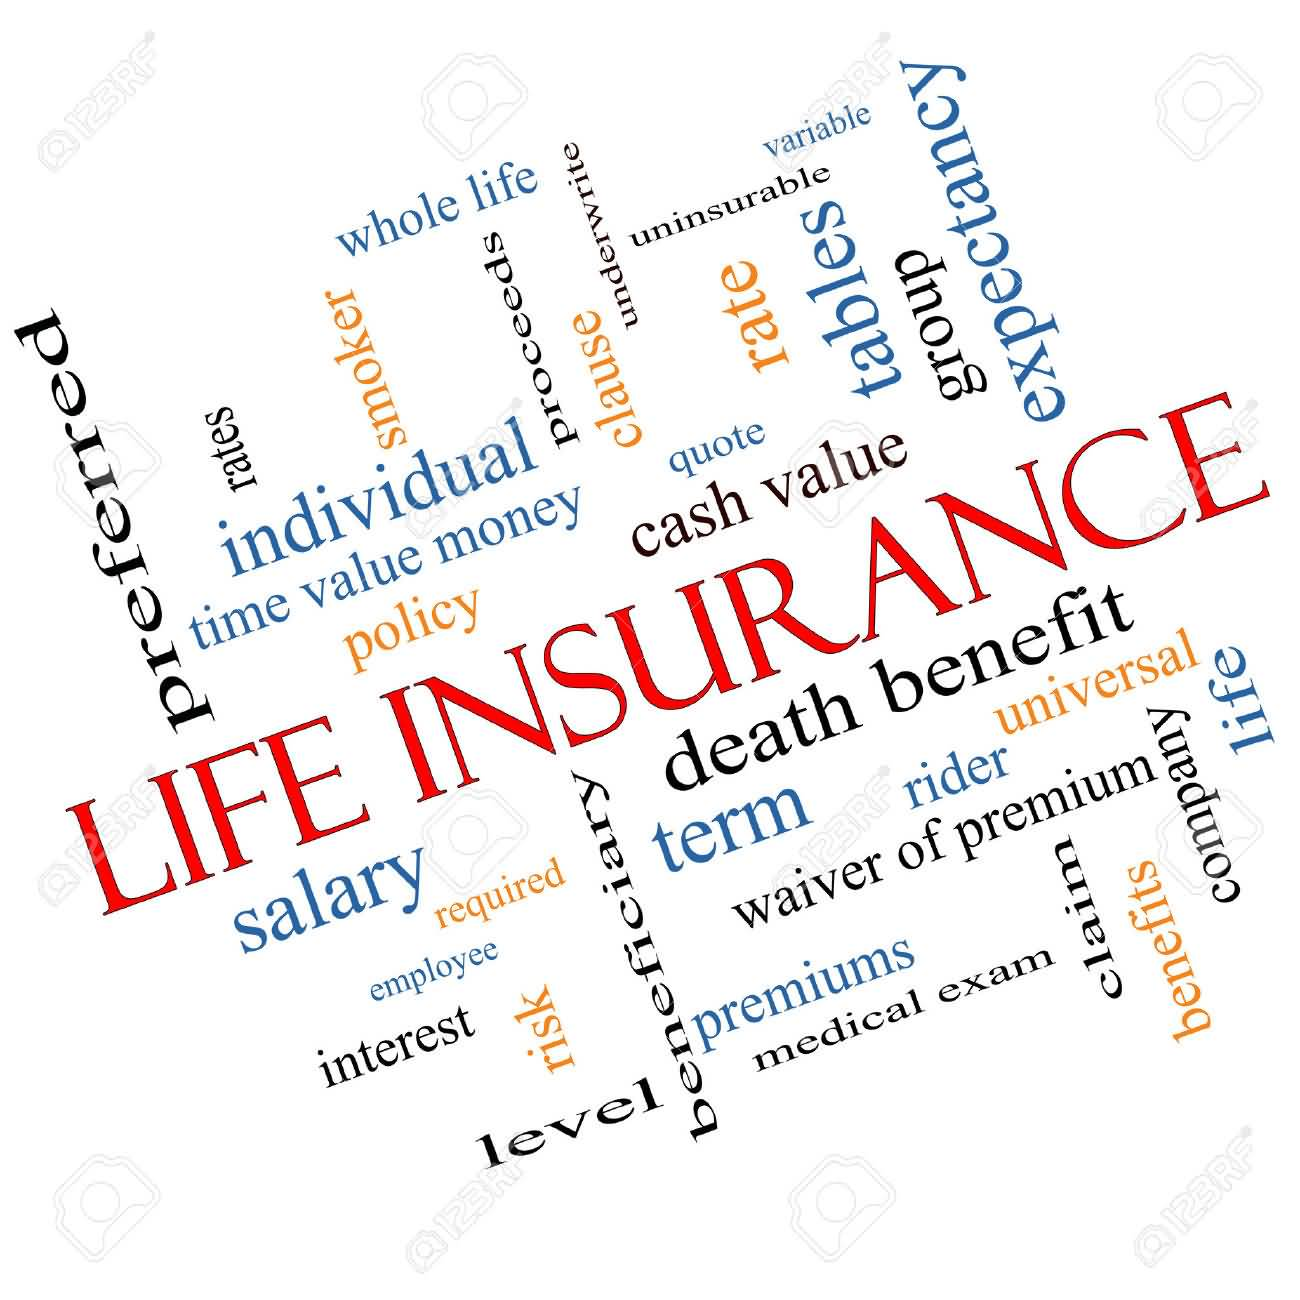 Life Insurance Sayings Quotes 20 Quote For Whole Life Insurance Pics And Photos  Quotesbae